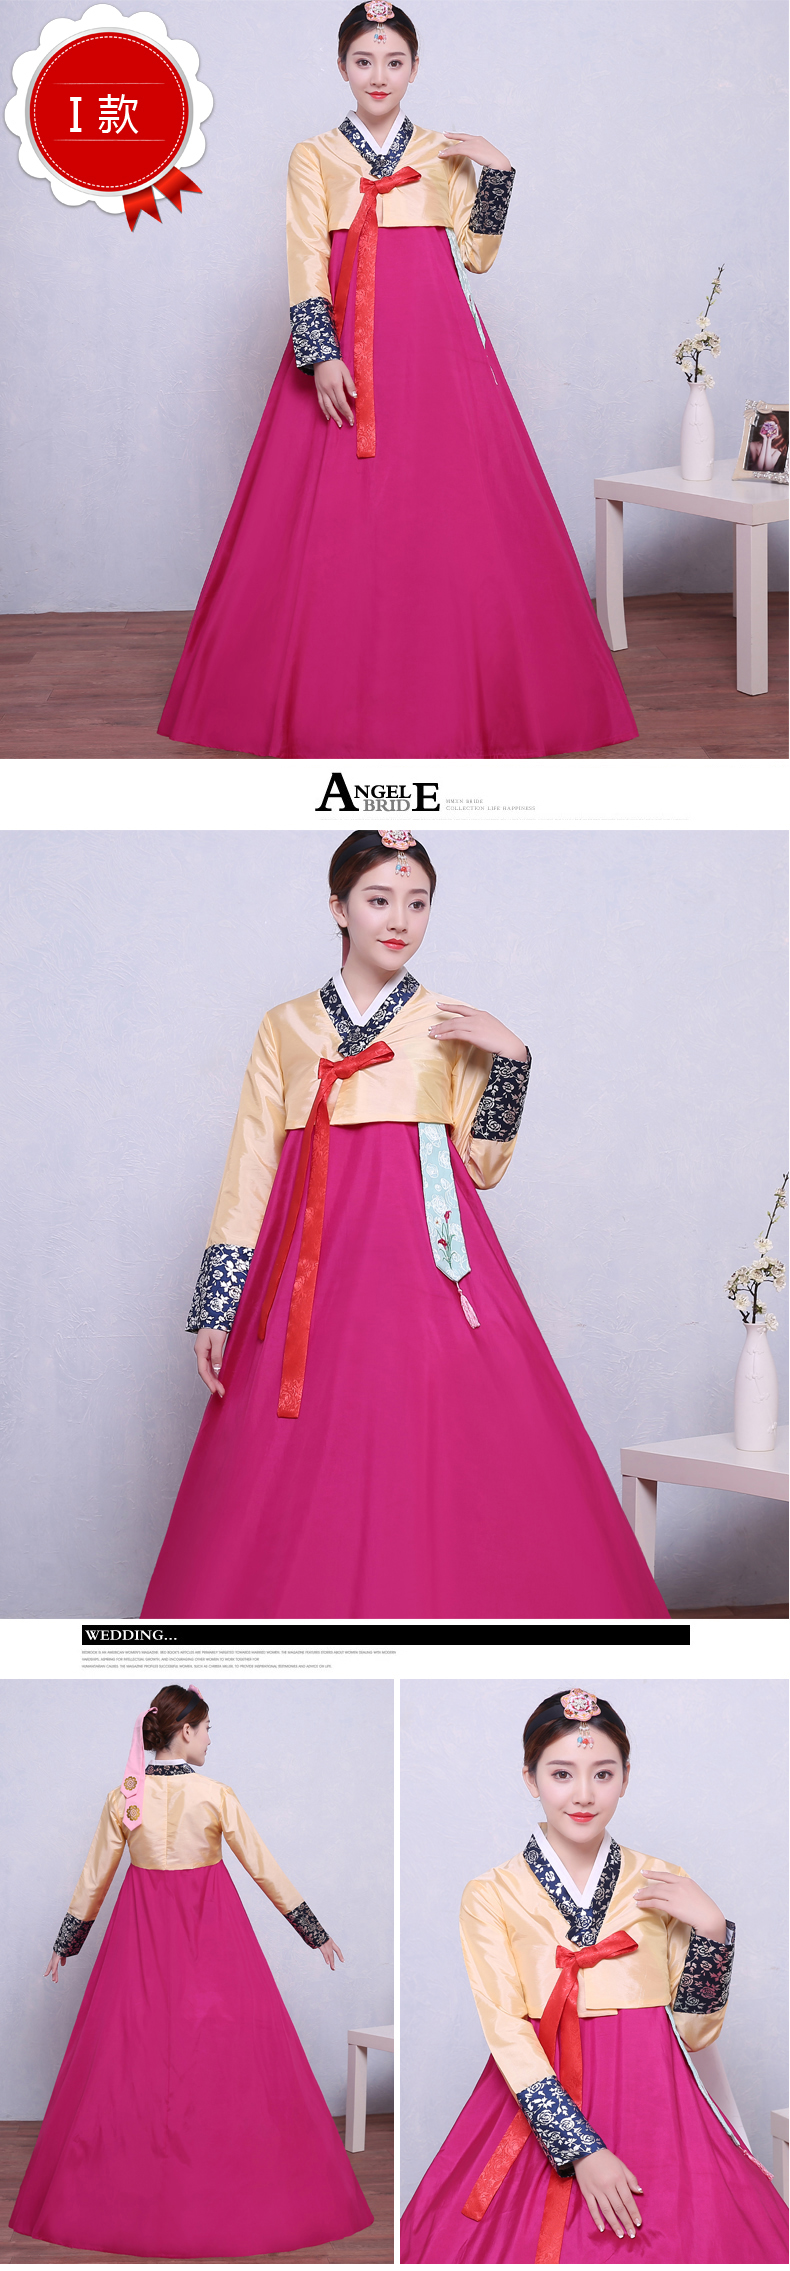 Woman Elegant Korean Traditional Costume Minority Dance Performance Details About Ut15b Multifunction Voltage Short Circuit Tester Step Click Here Clothing Female Hanbok Court Pincess Dress Lady Cosplay 89